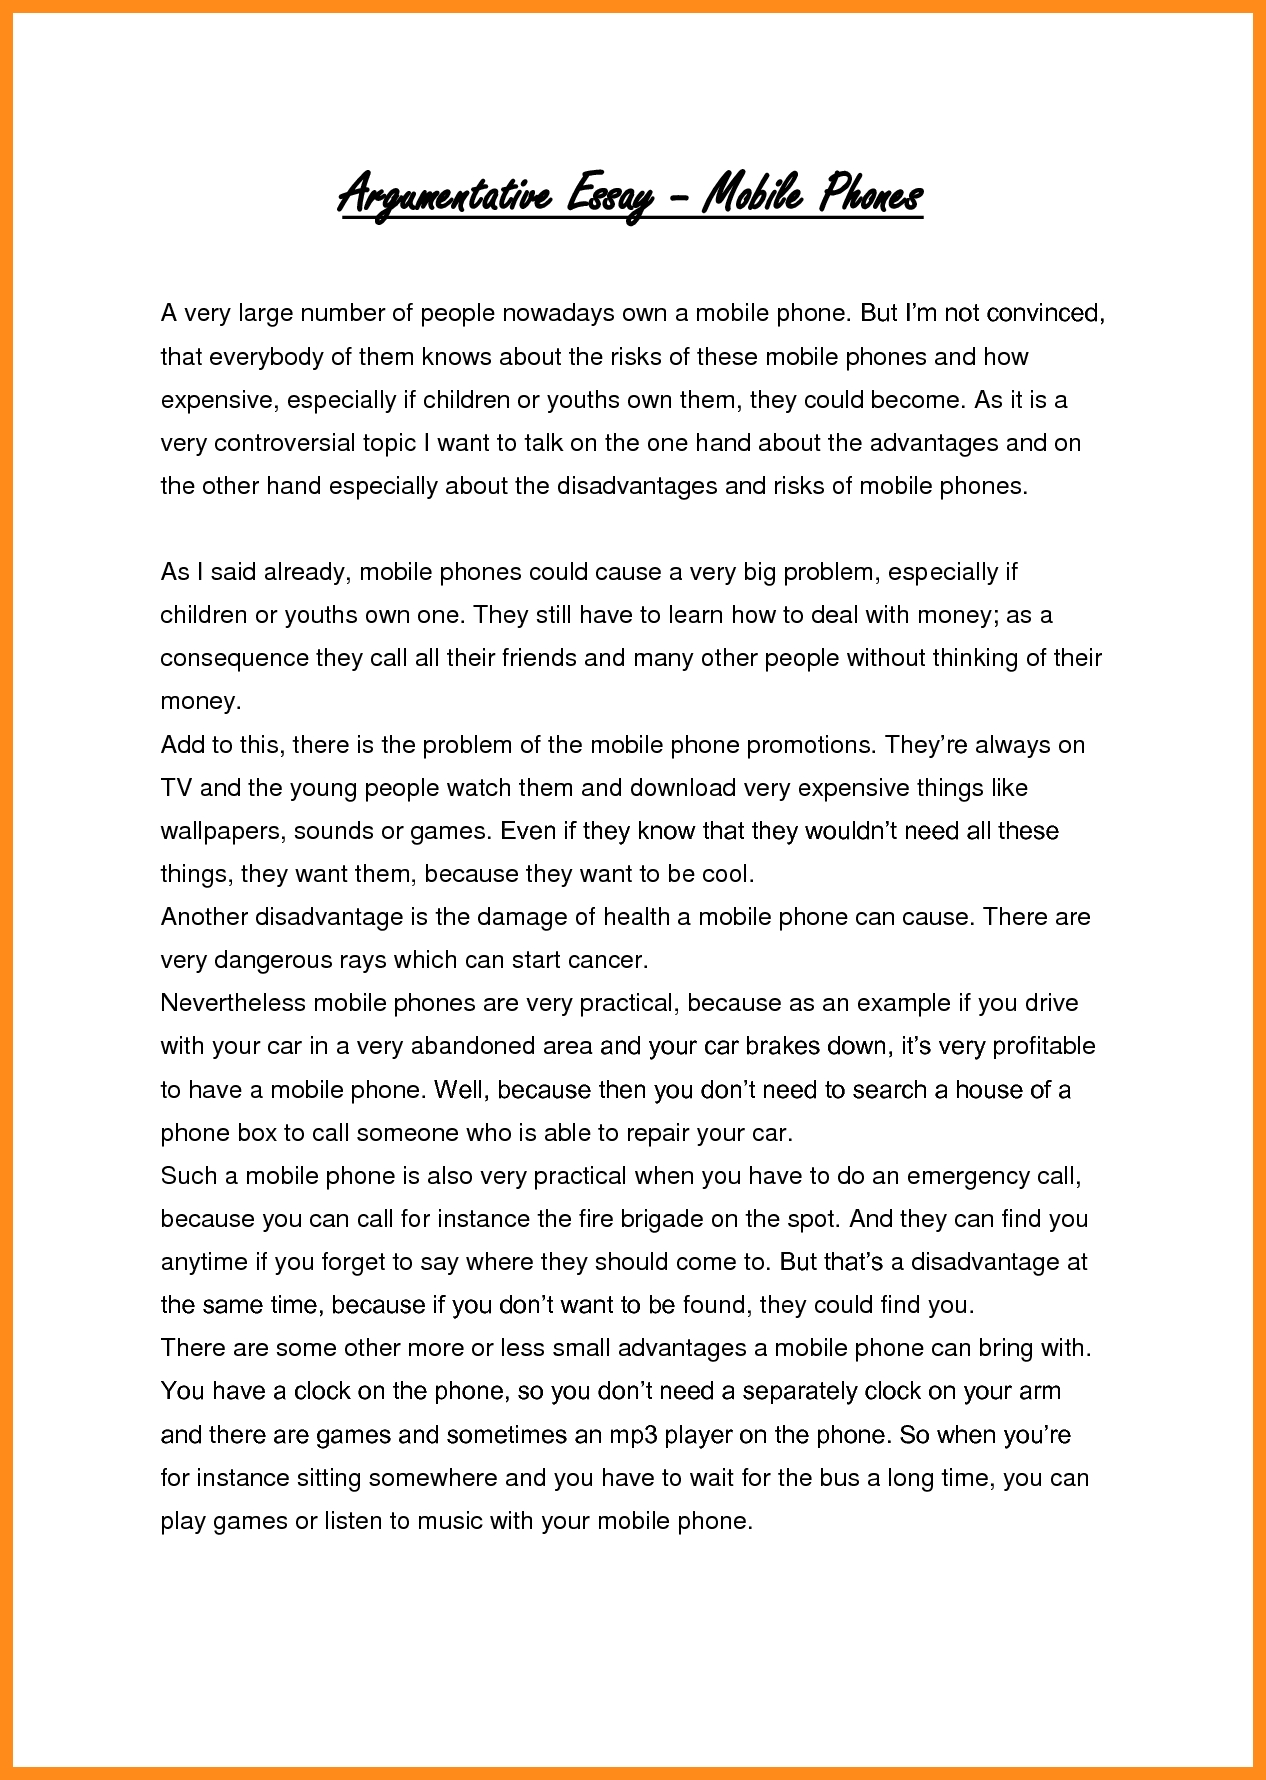 024 Examples Of Persuasive Essays Essay Example For Kids Printables Corner Template Highchoolamples Gre With Regard Outlineample Pdfhort Highschool Excellent 5th Grade Written By Graders Argumentative-persuasive Topics Full